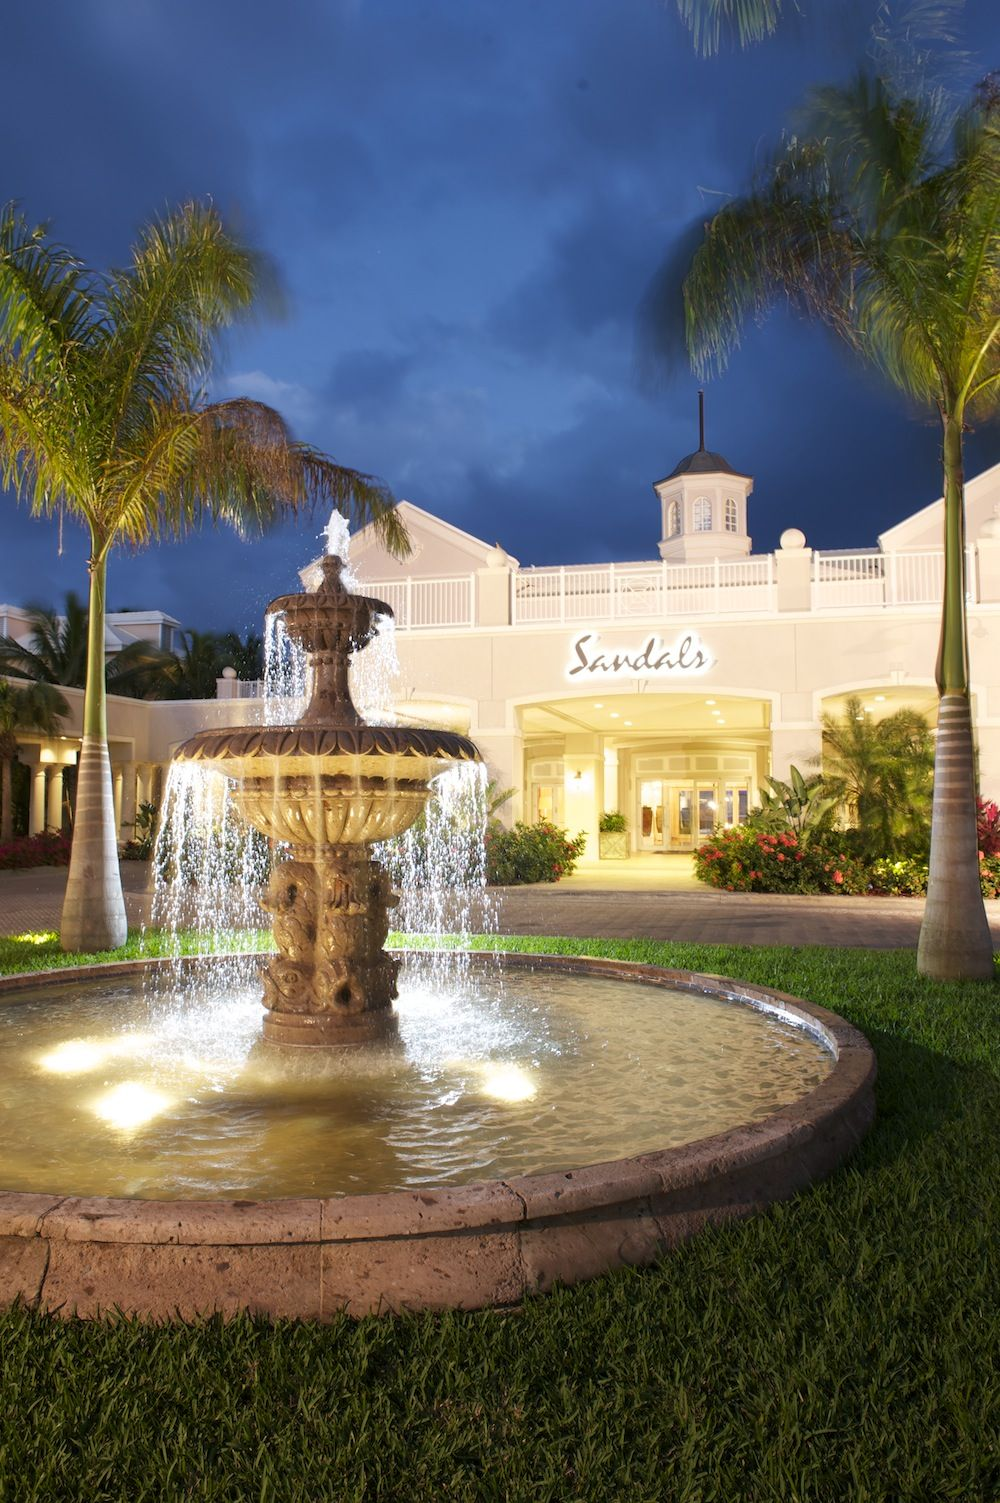 Entrance To Sandals Emerald Bay Sandals Resorts The